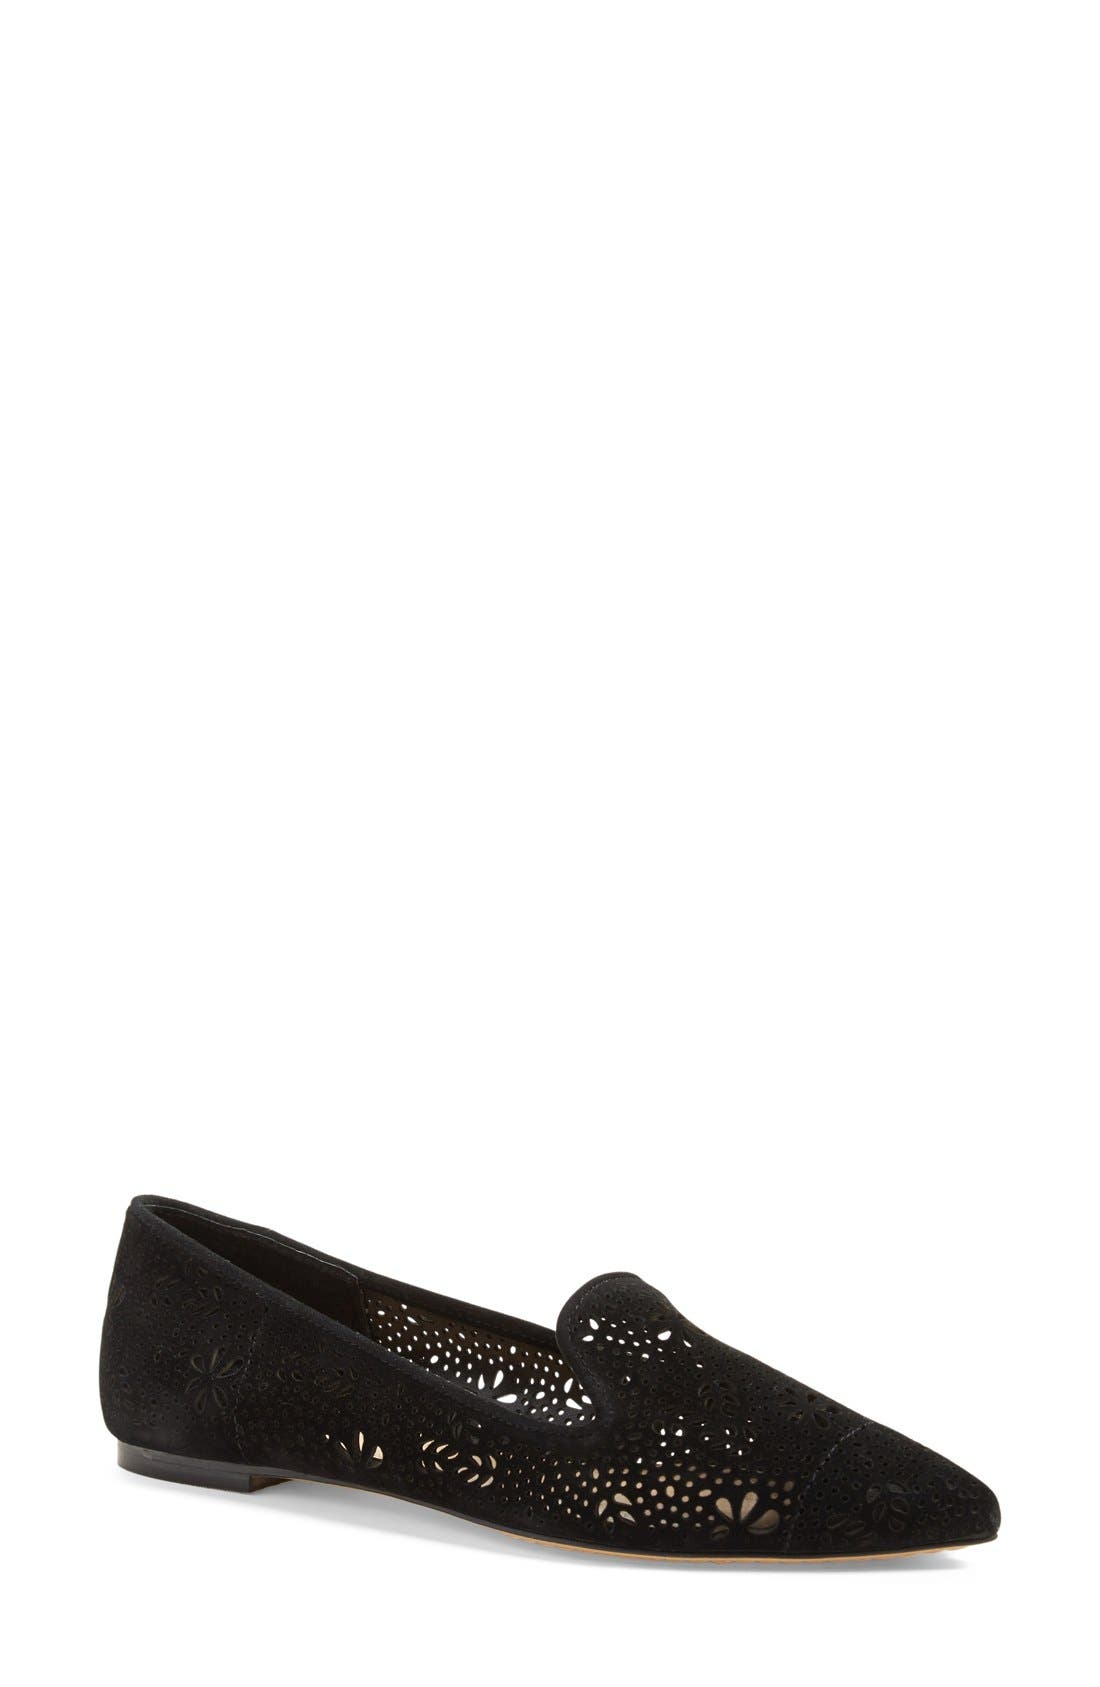 VINCE CAMUTO 'Earina' Perforated Flat, Main, color, 001